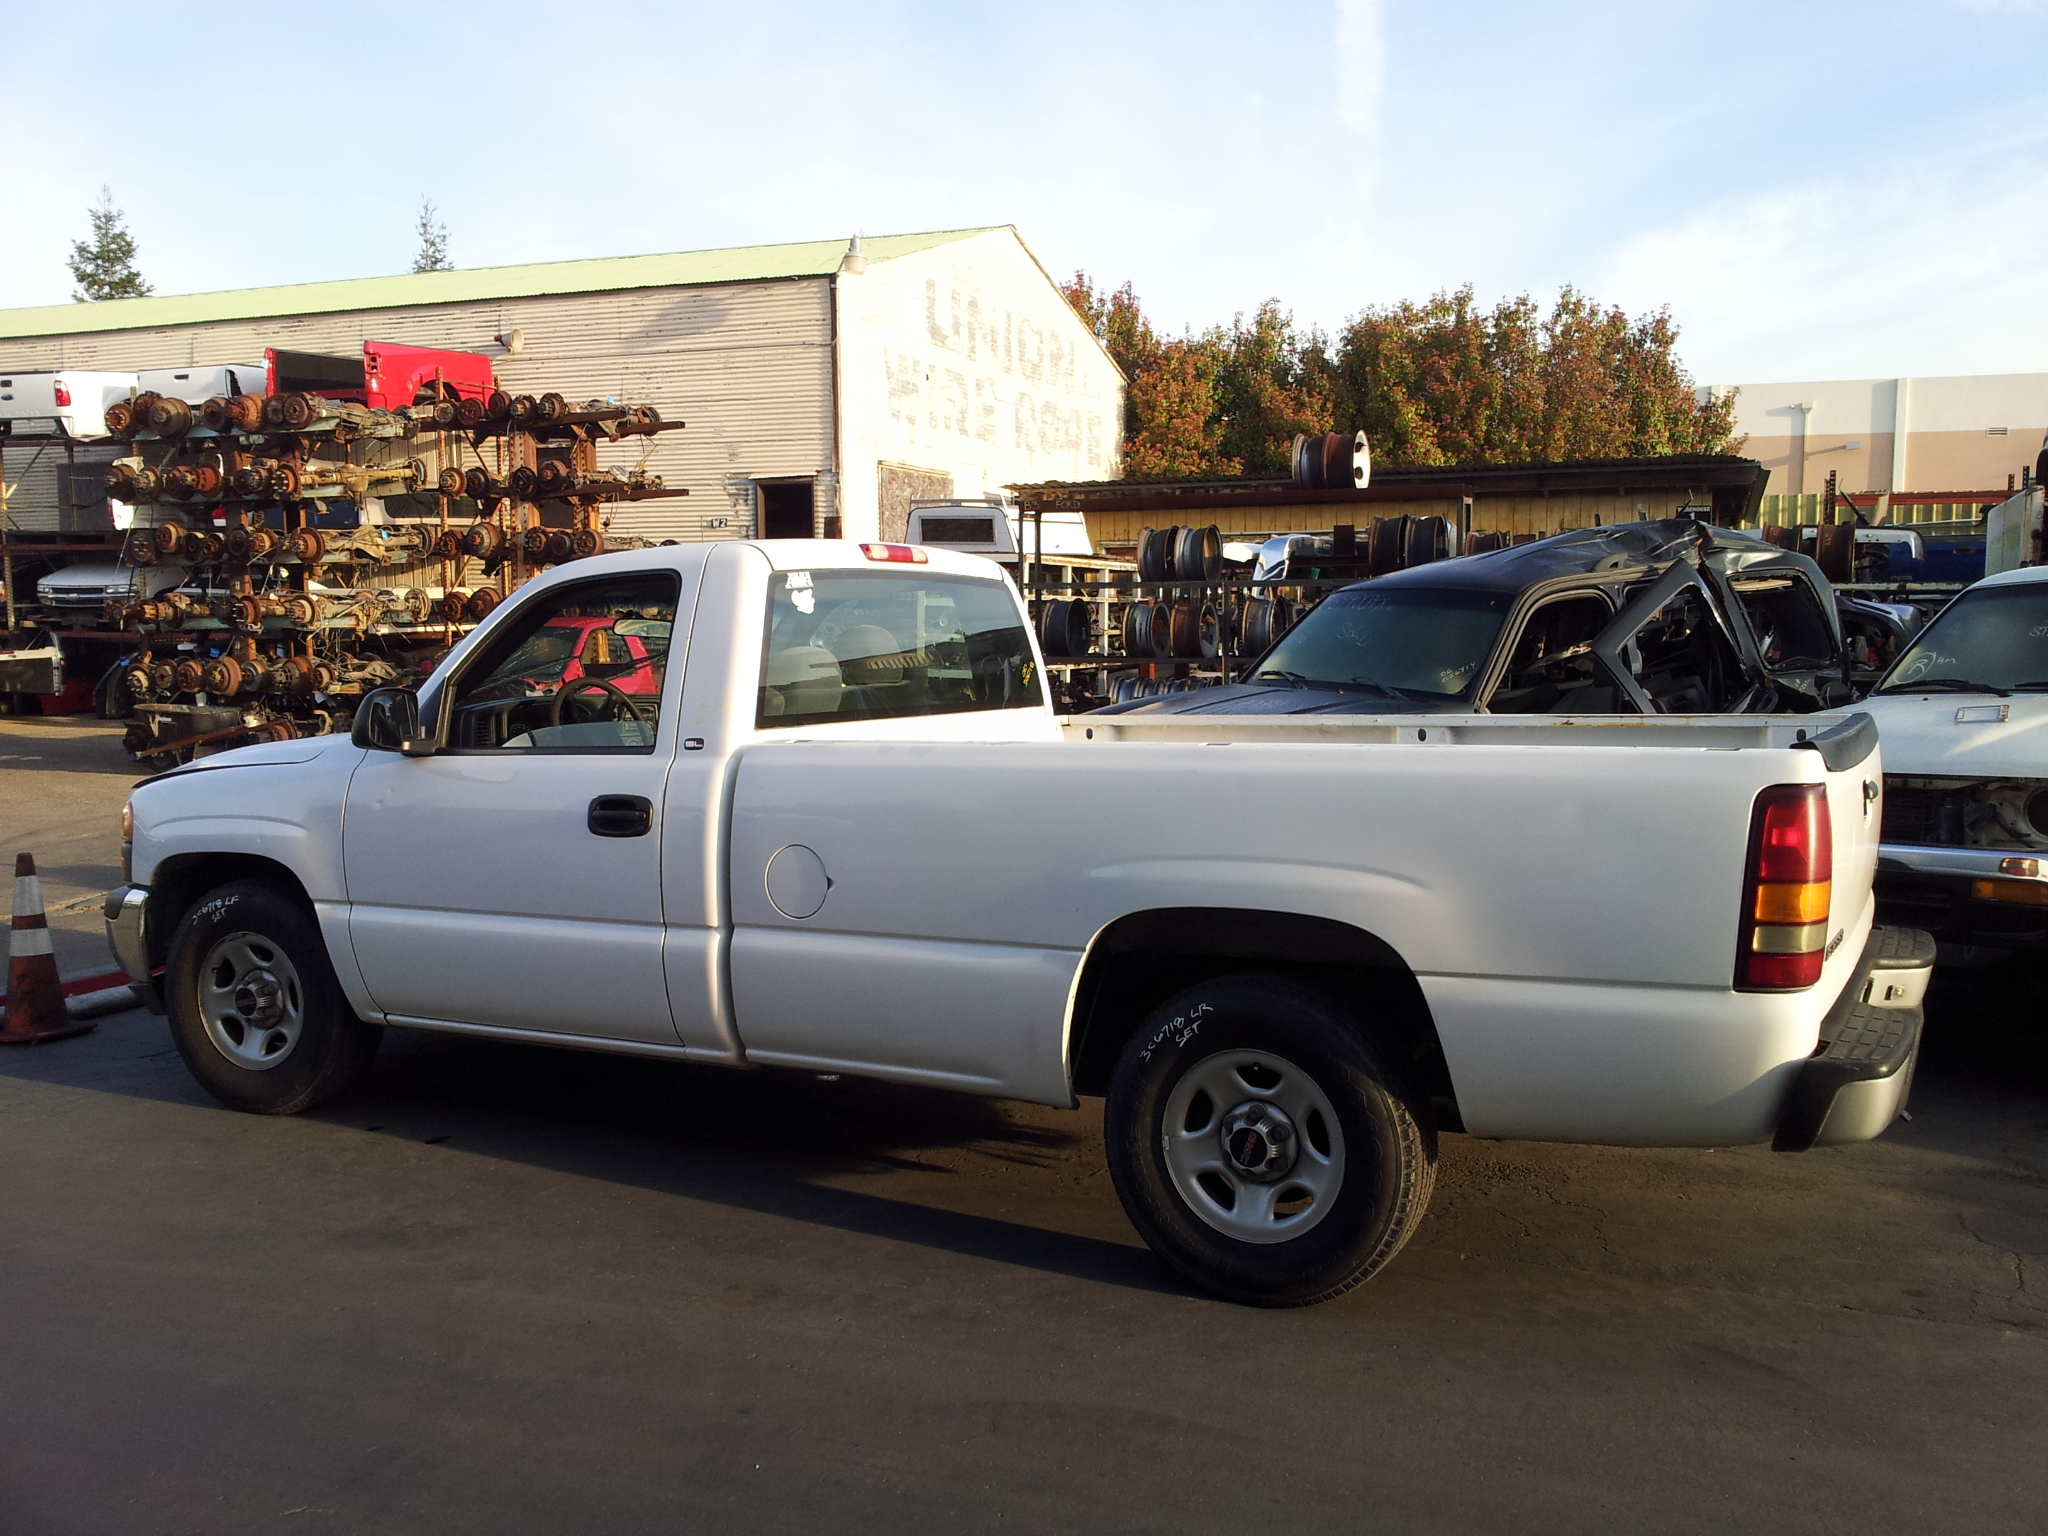 Used 2000 Gmc Sierra C1500 Regular Cab 2wd 4 3l V6 Truck